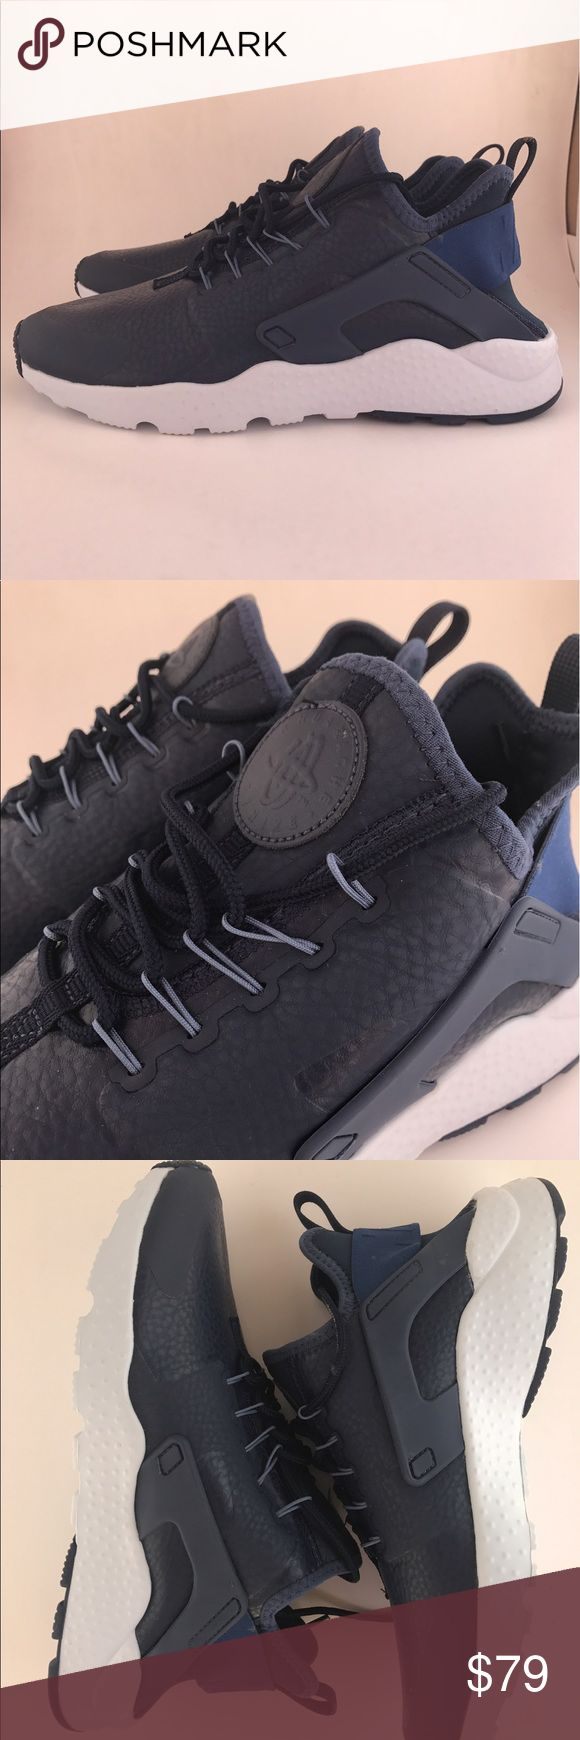 W Nike Air Huarache Run Ultra PRM Authentic and new Nike Air Huarache Run Ultra Premium sportswear shoes for women, Navy blue and white...soft leather like uppers....size 8 women's Nike Shoes Sneakers